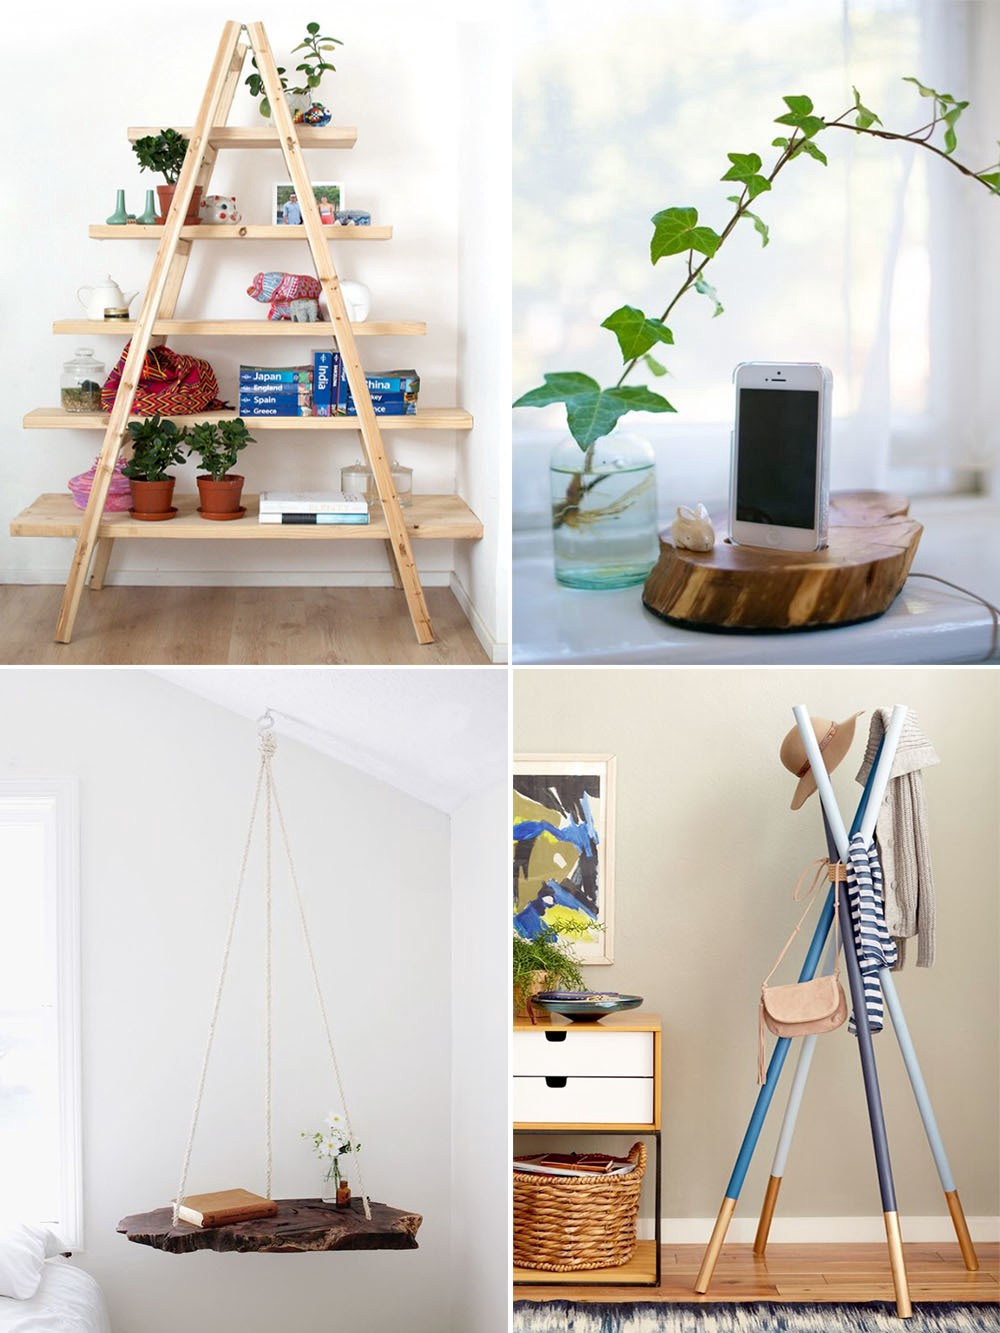 10 simple woodworking projects that require using basic skills